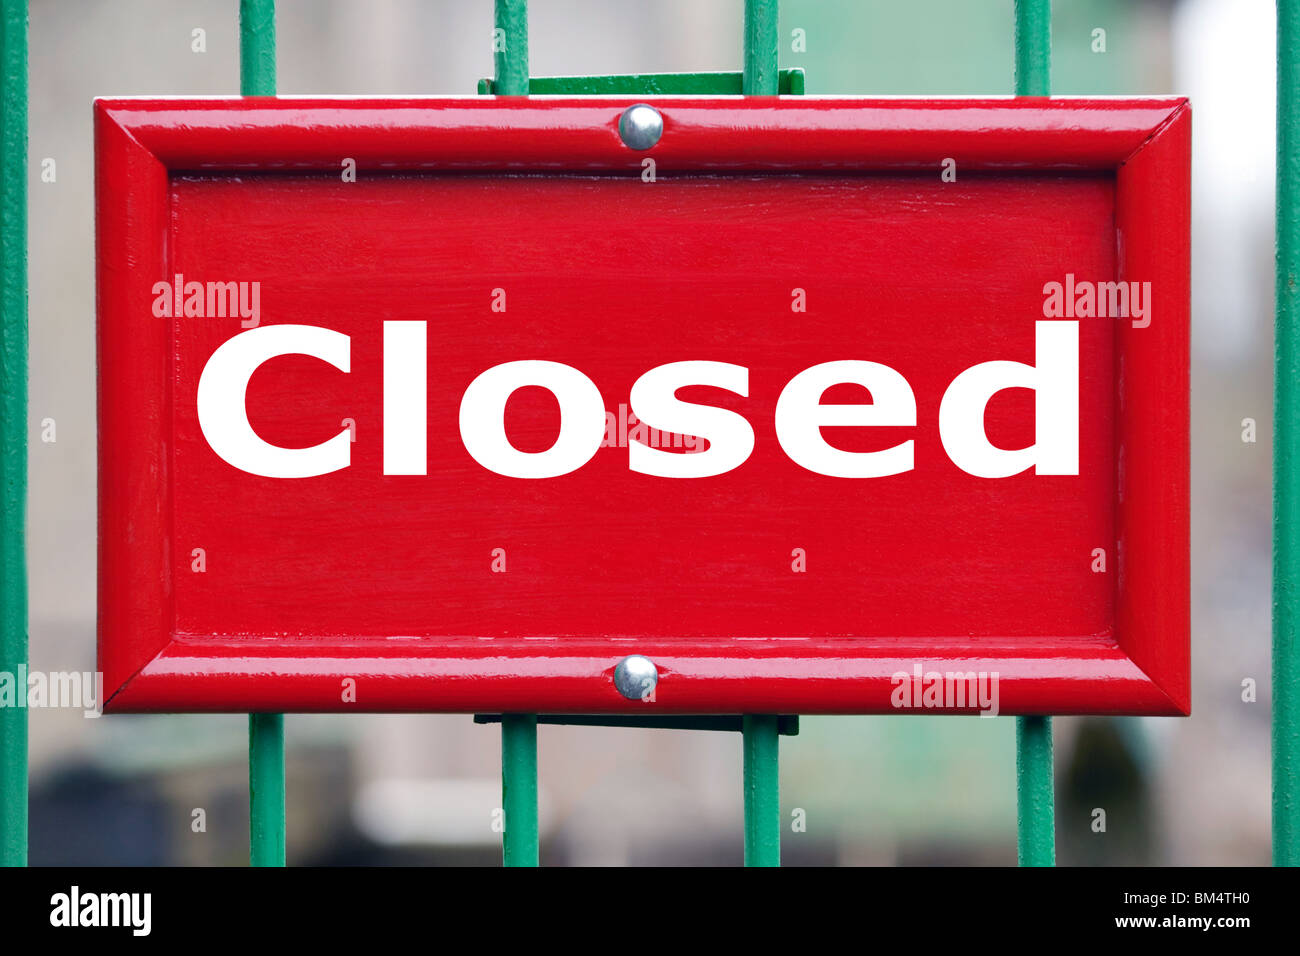 Painted red sign on a gate with the word Closed blurred background. - Stock Image